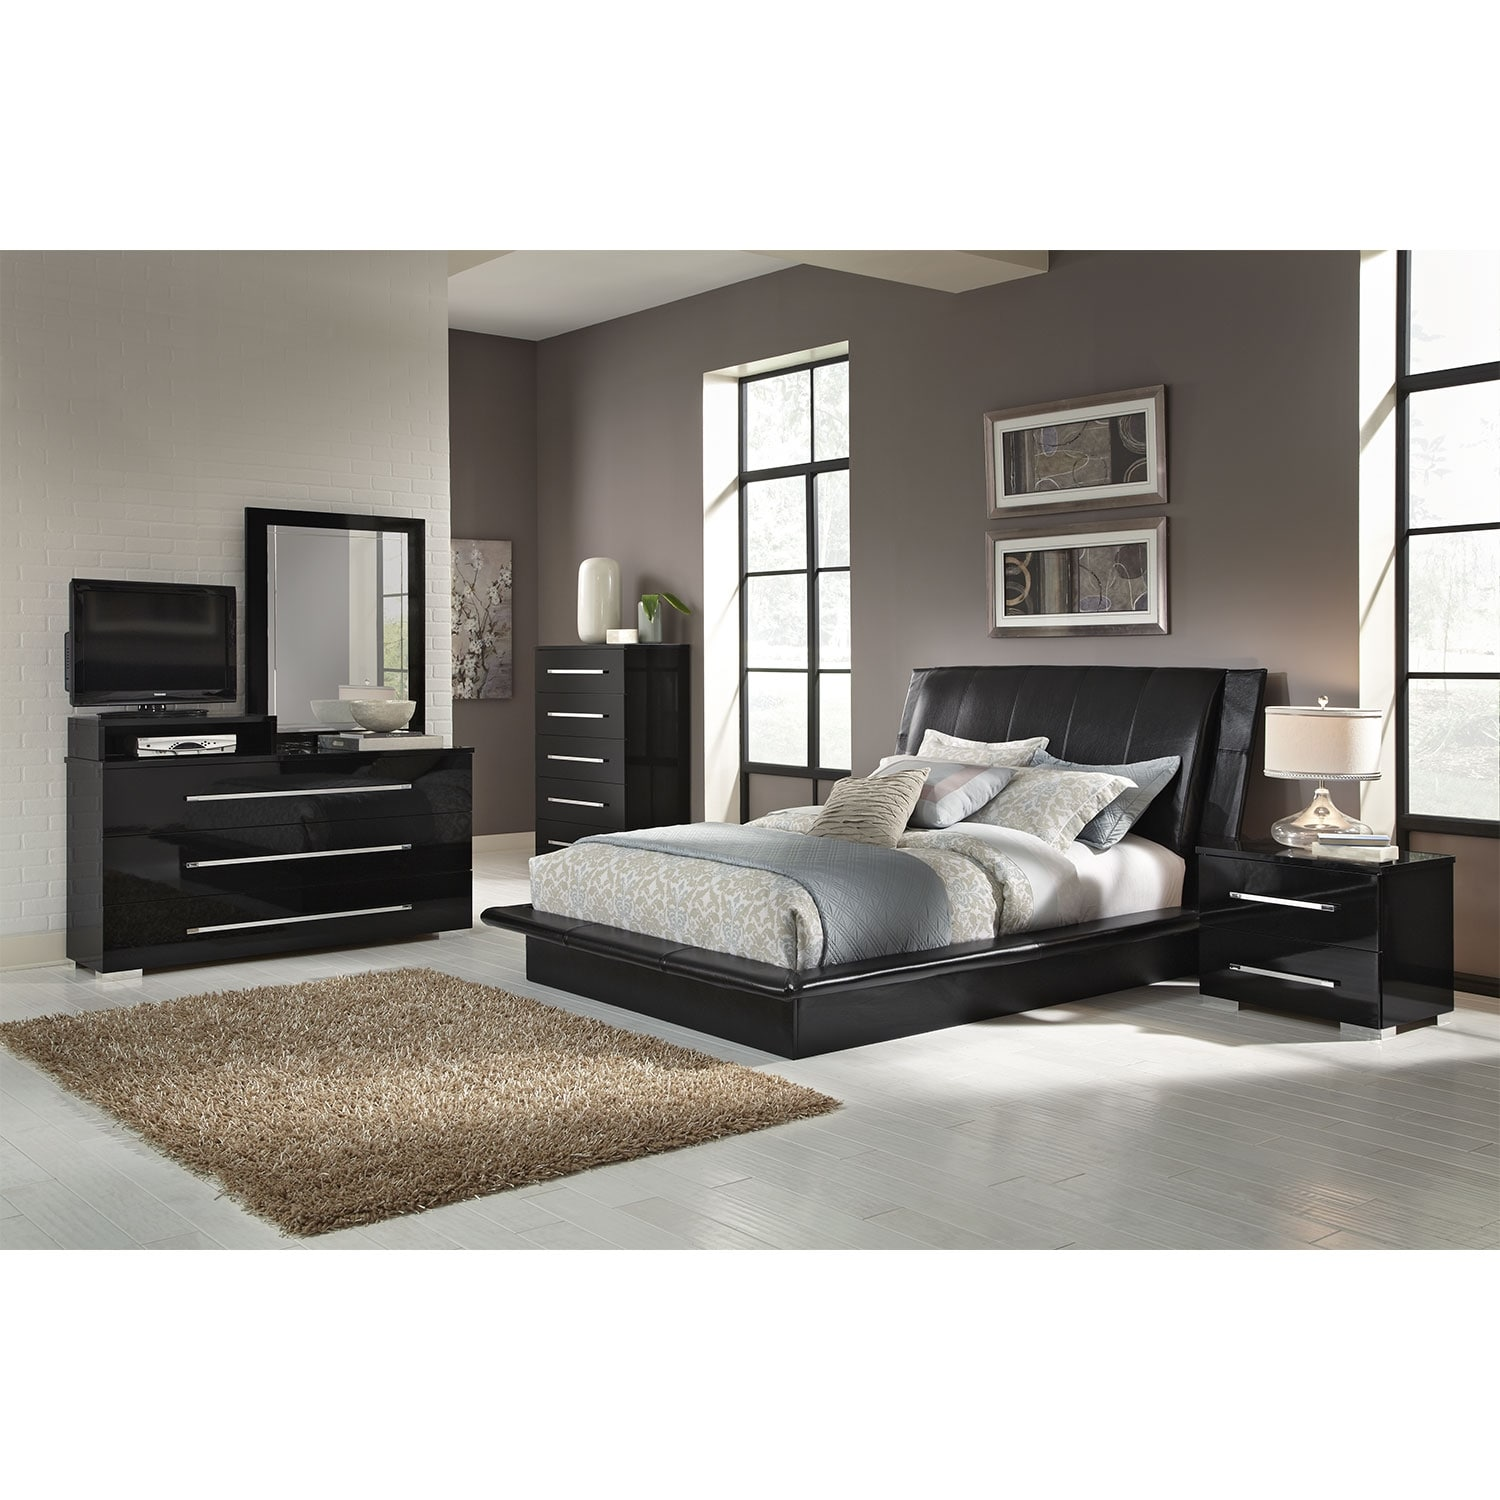 value city bedroom sets dimora 7 upholstered bedroom set with media 17687